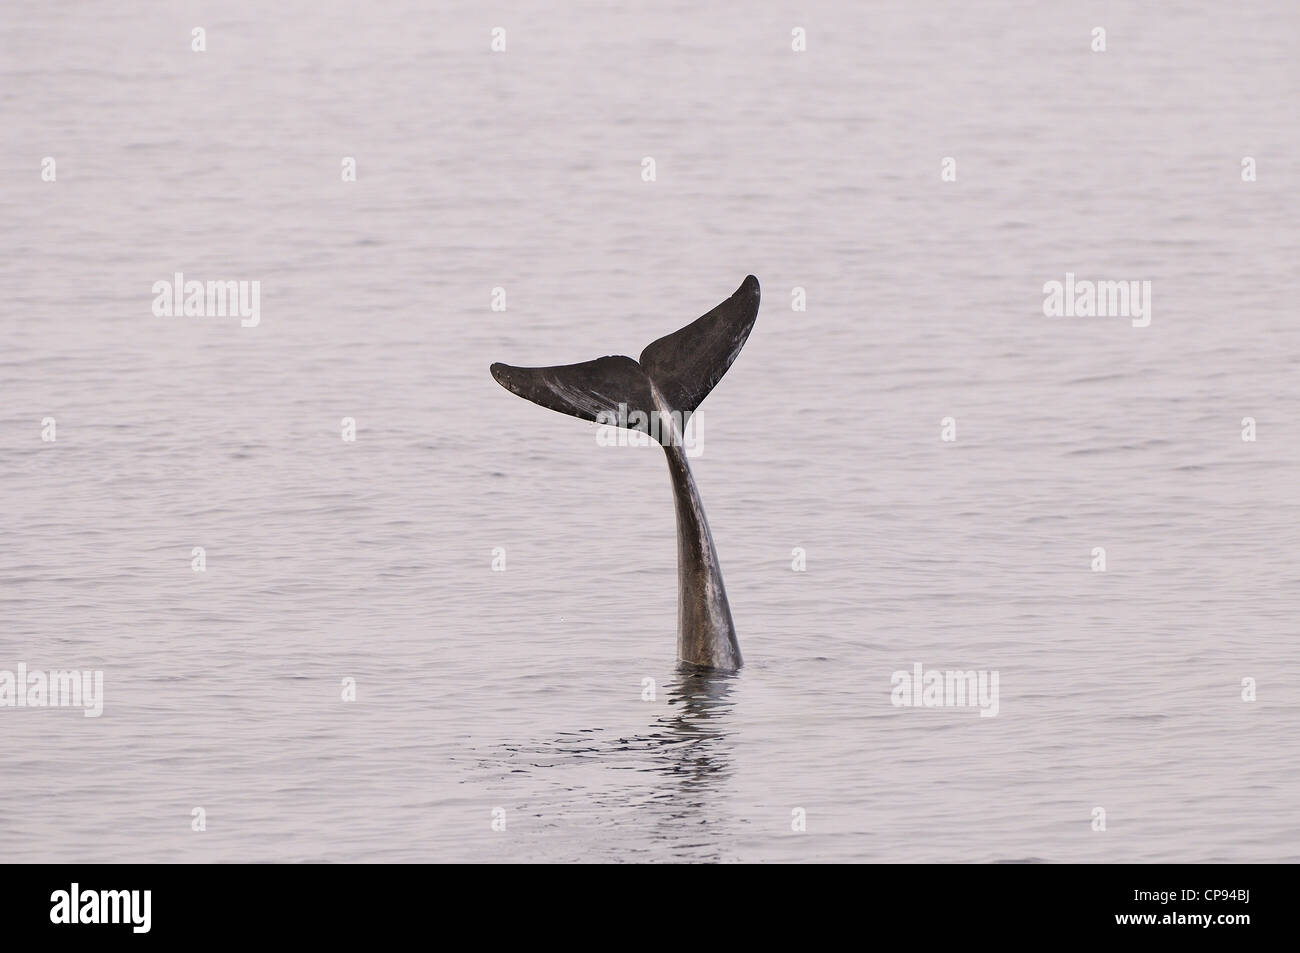 Risso's Dolphin (Grampus griseus) raising tail fluke out of the water, The Maldives - Stock Image